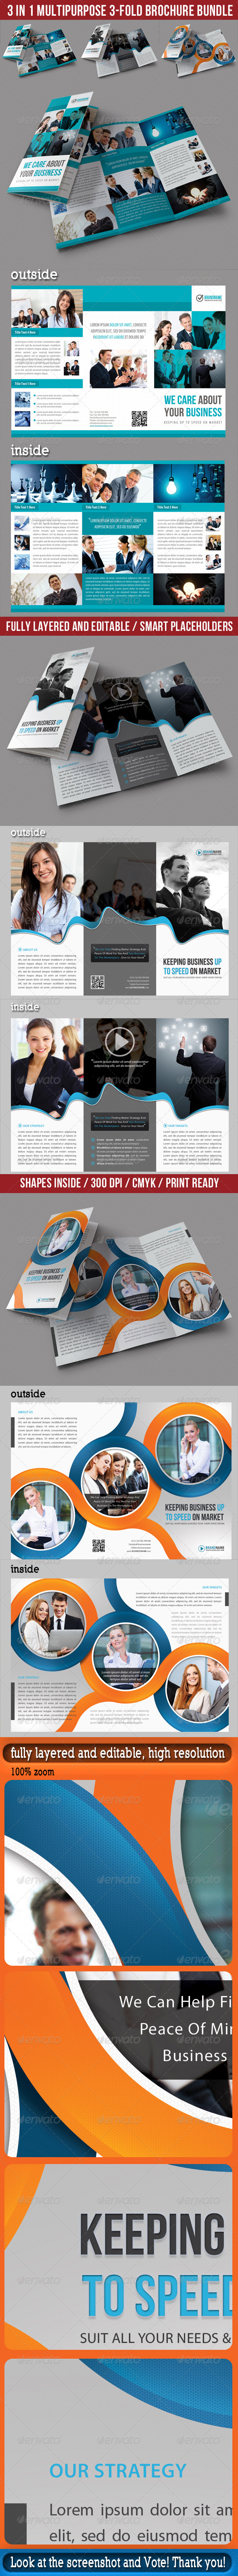 GraphicRiver 3 in 1 Corporate 3-Fold Brochure Bundle 02 7028505